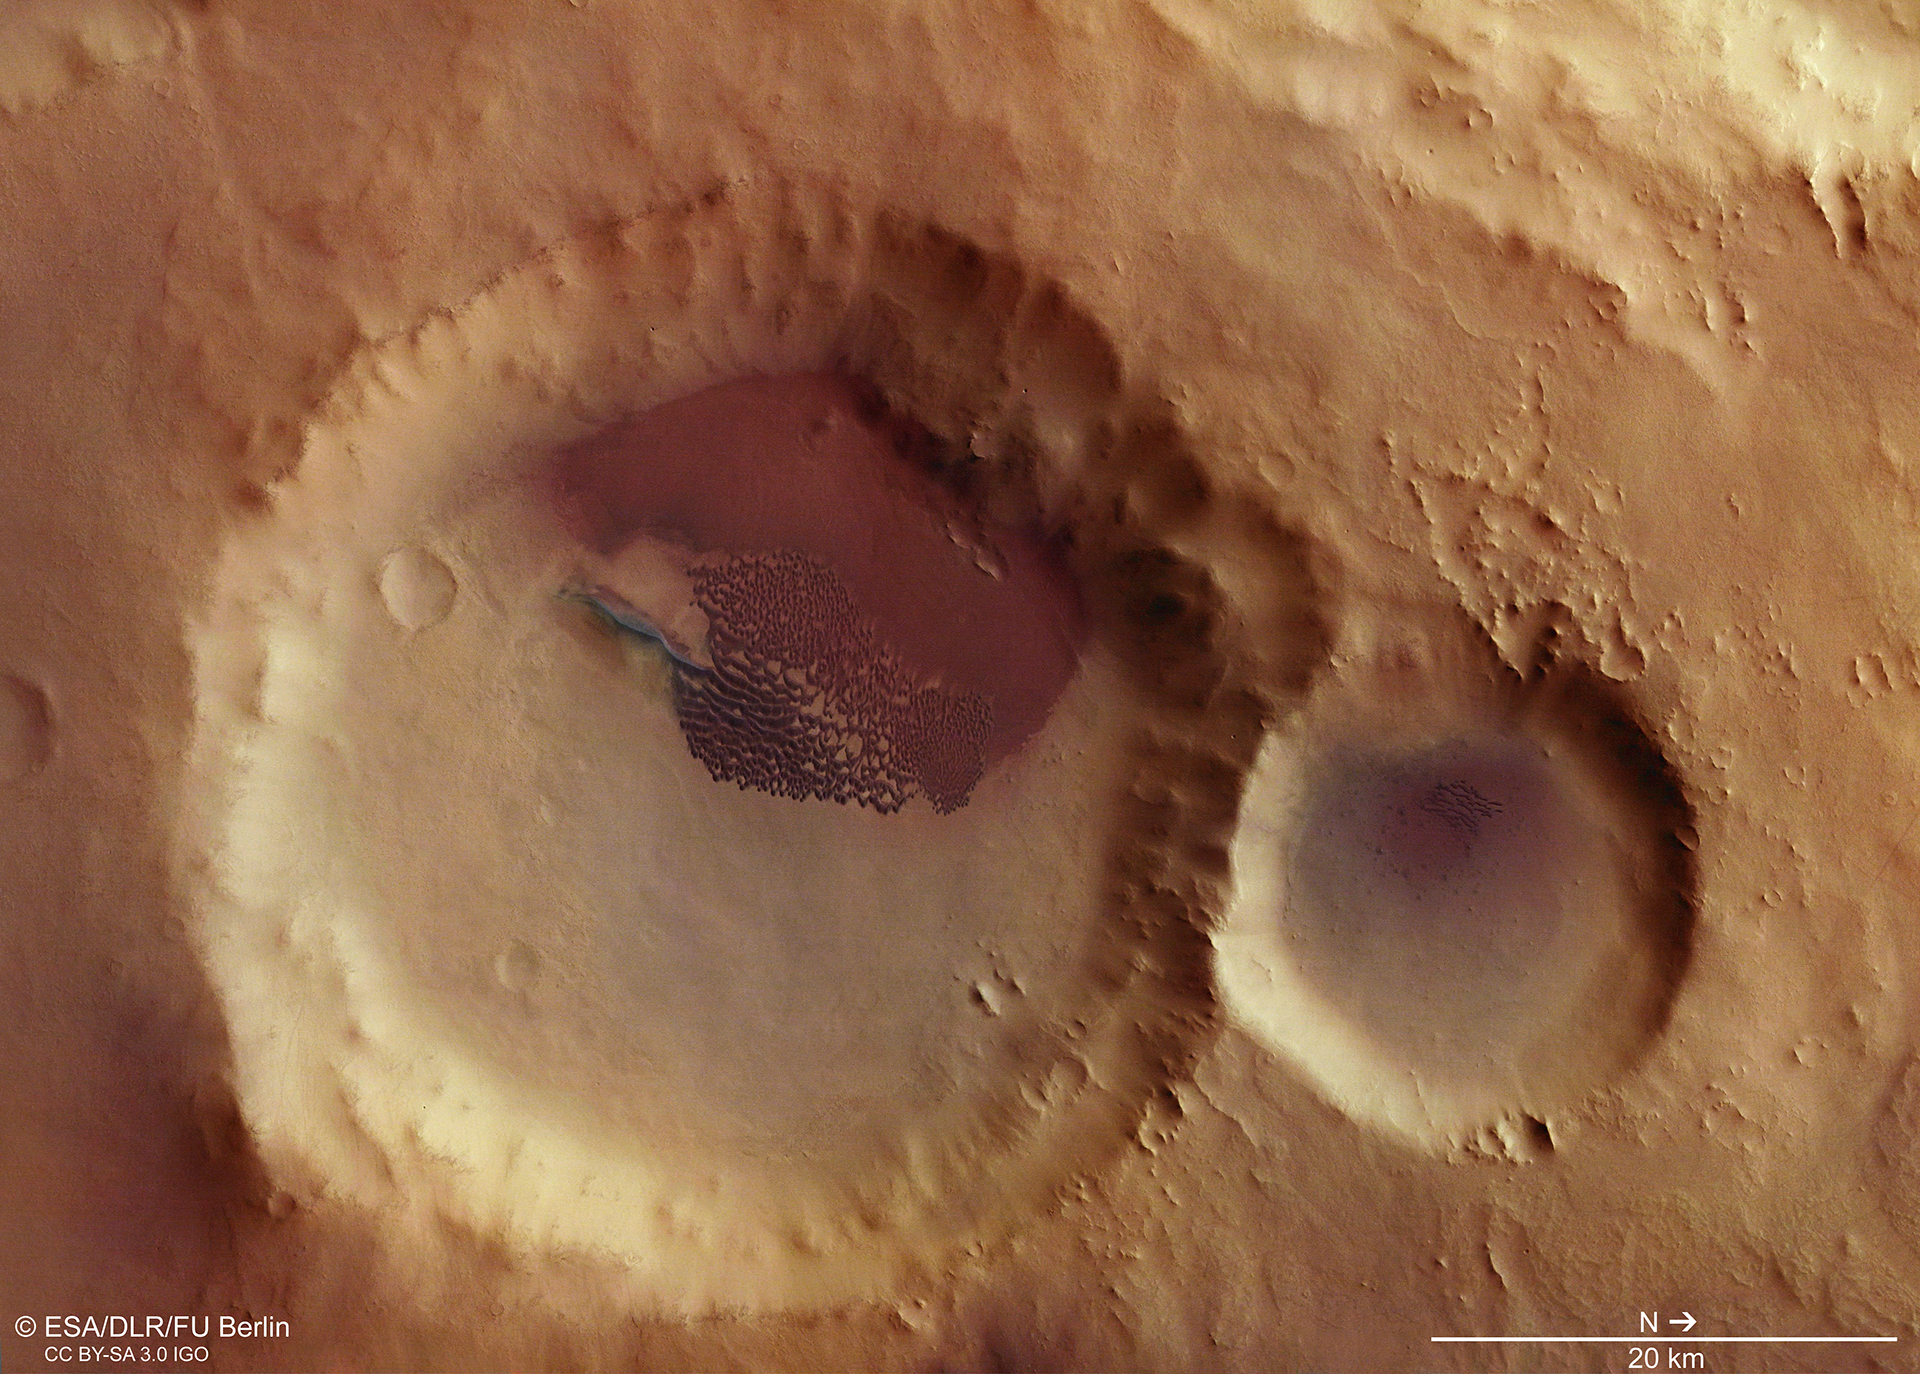 Plan view of a Martian crater